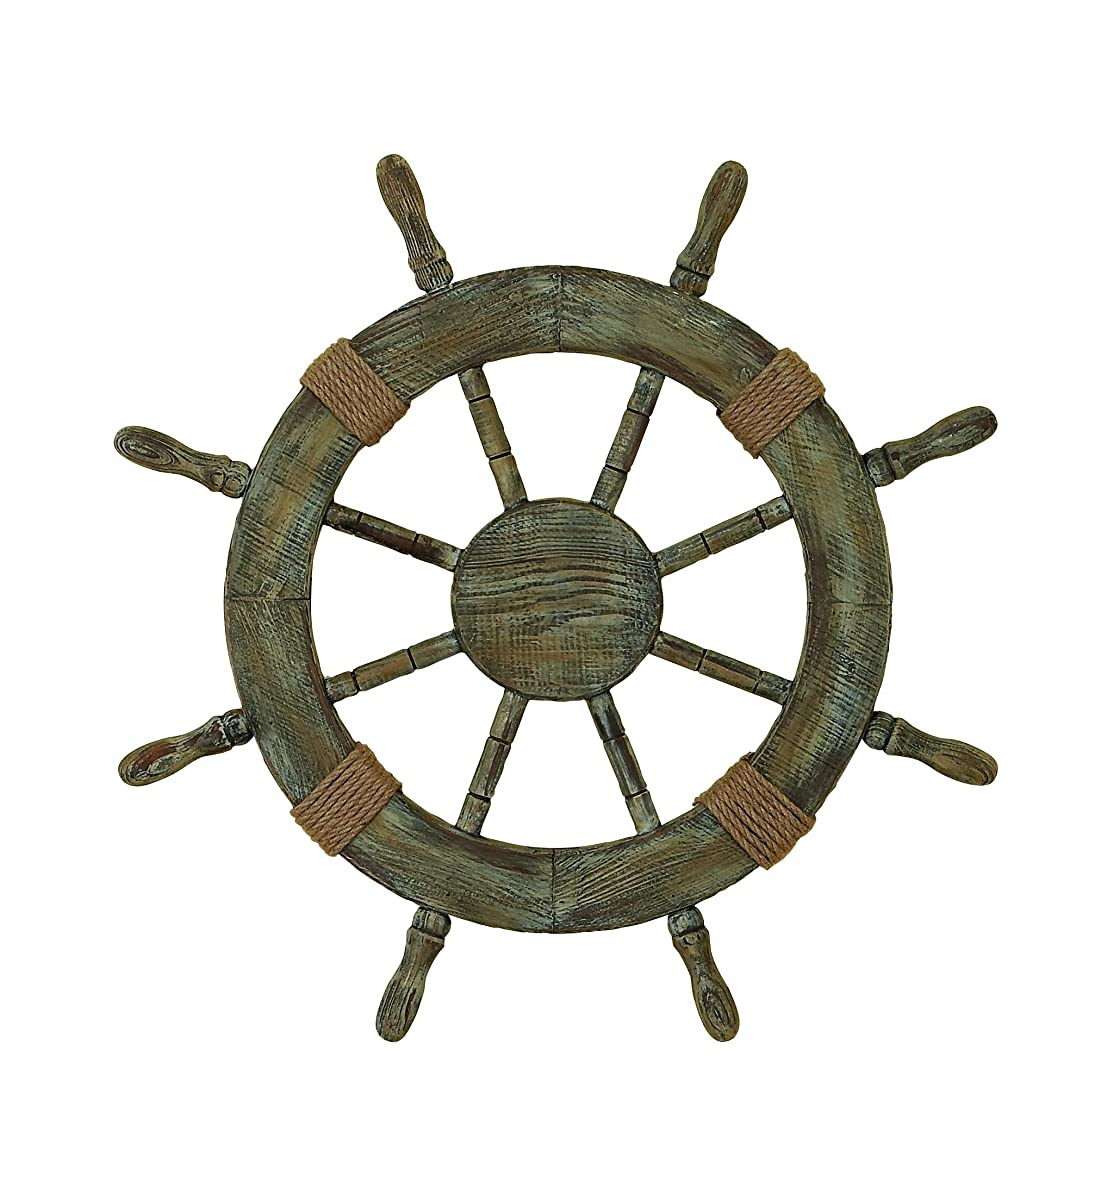 "Nautical Decor 24"" Wood Pirates Ship Wheel Marine Decor"